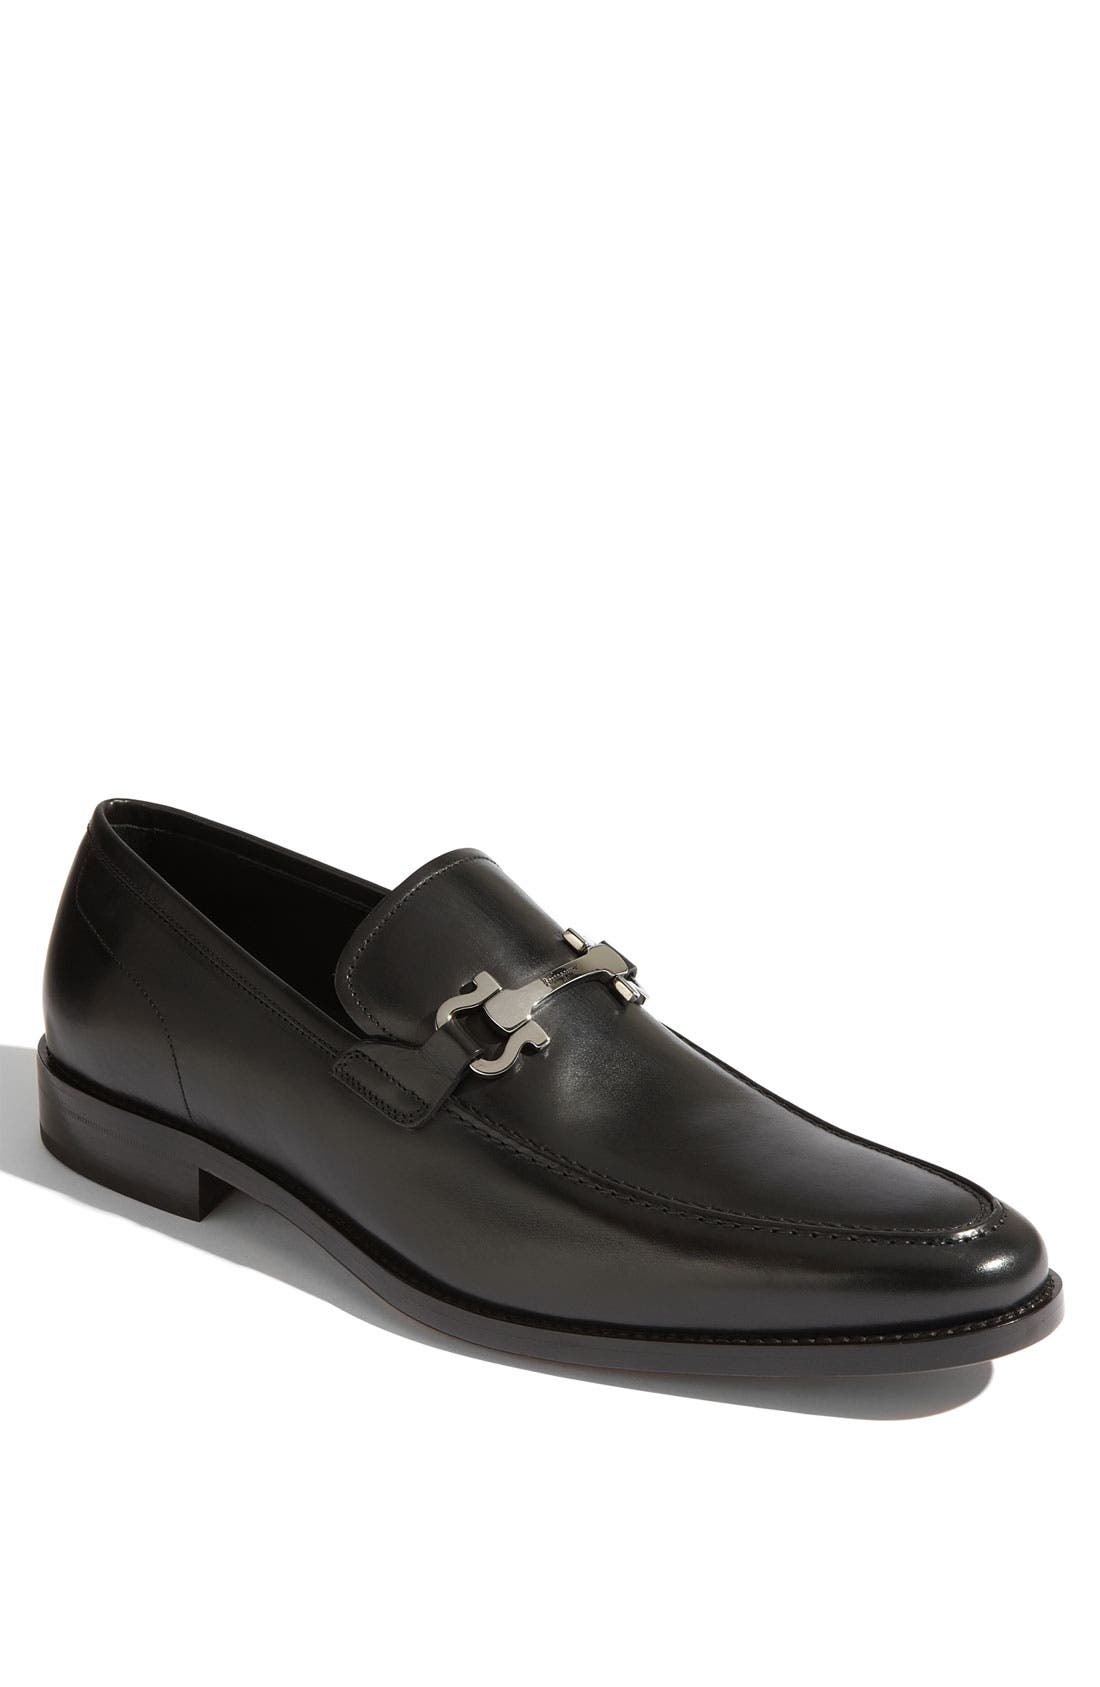 Alternate Image 1 Selected - Salvatore Ferragamo 'Clay' Loafer (Online Only)